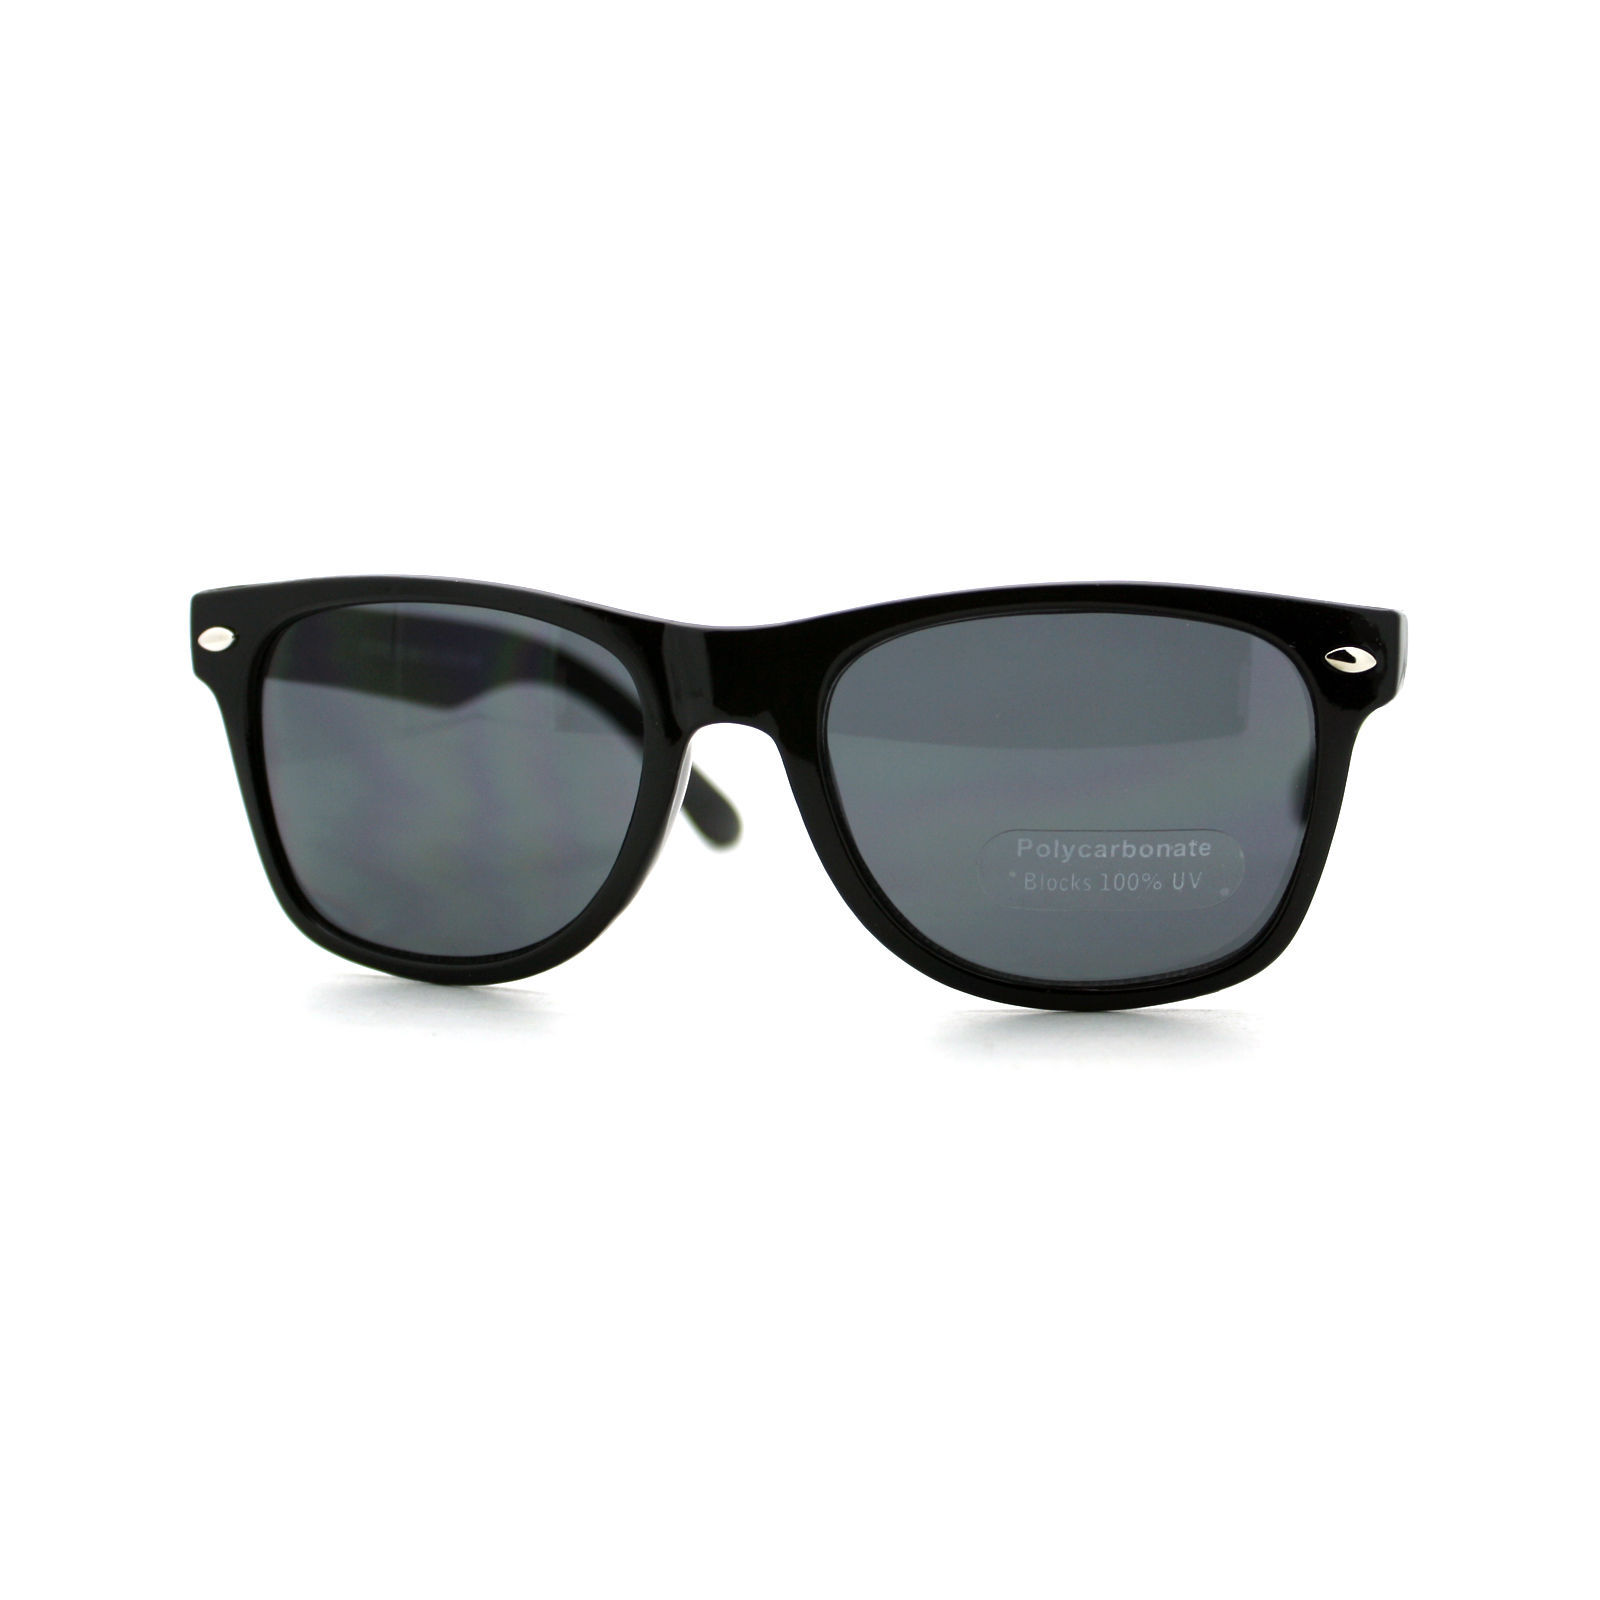 5d6a056dfdfb Kid s Sunglasses Black Stunna Shades Classic and 50 similar items. 57